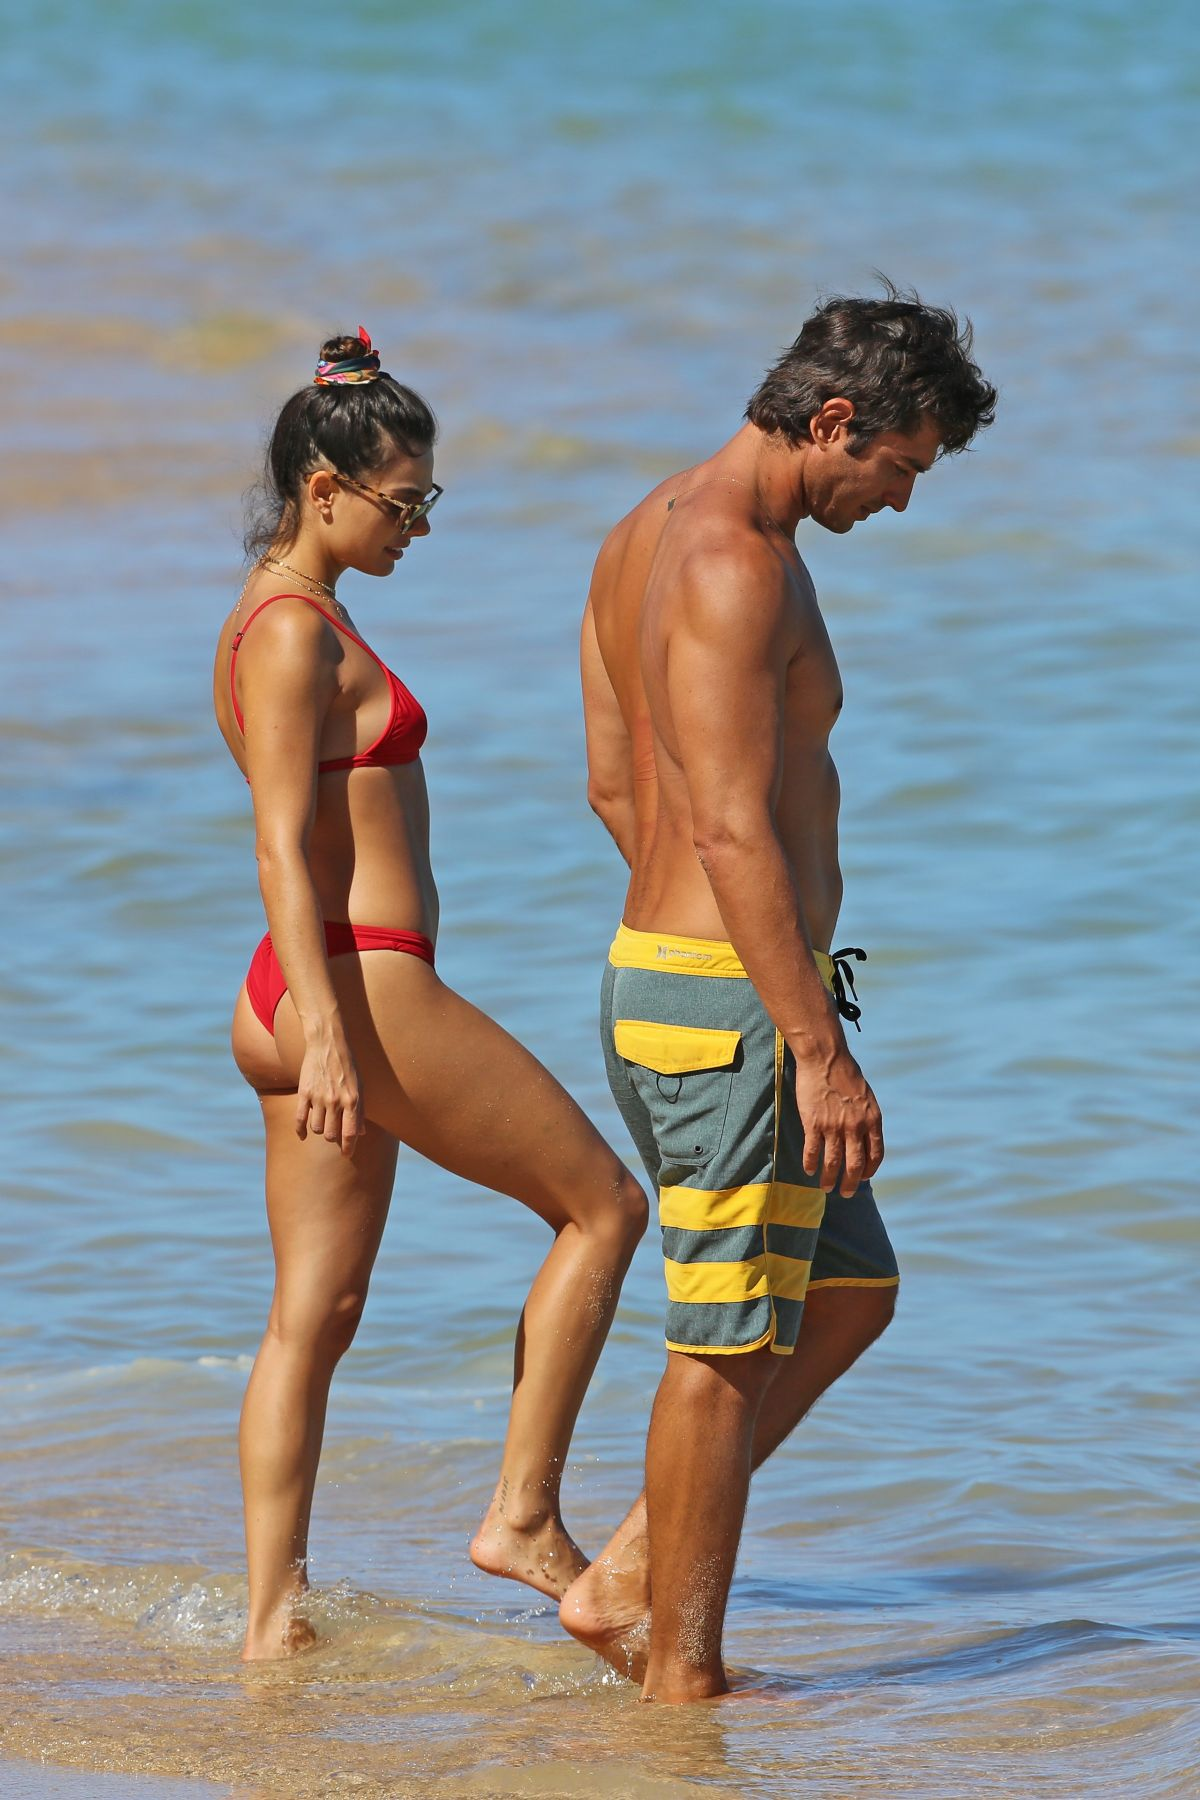 Isis Valverde in Red Bikini on the beach in Hawaii Pic 29 of 35